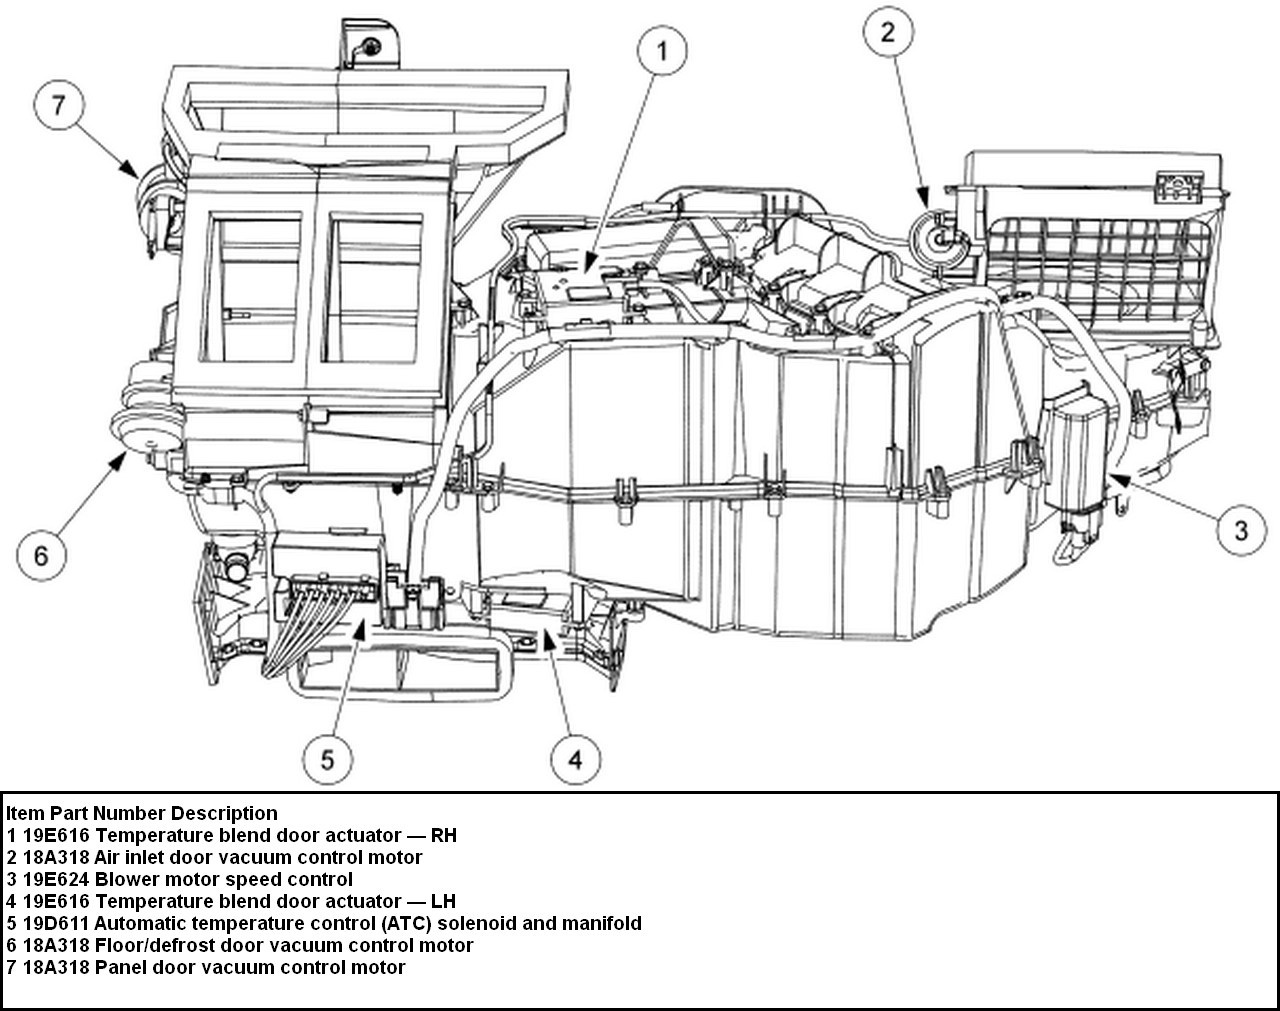 2008 Ford 64 Engine Diagram Another Blog About Wiring Harman Kardon 76160 06 02 Expedition U2022 Rh Ok2 Infoservice Ru